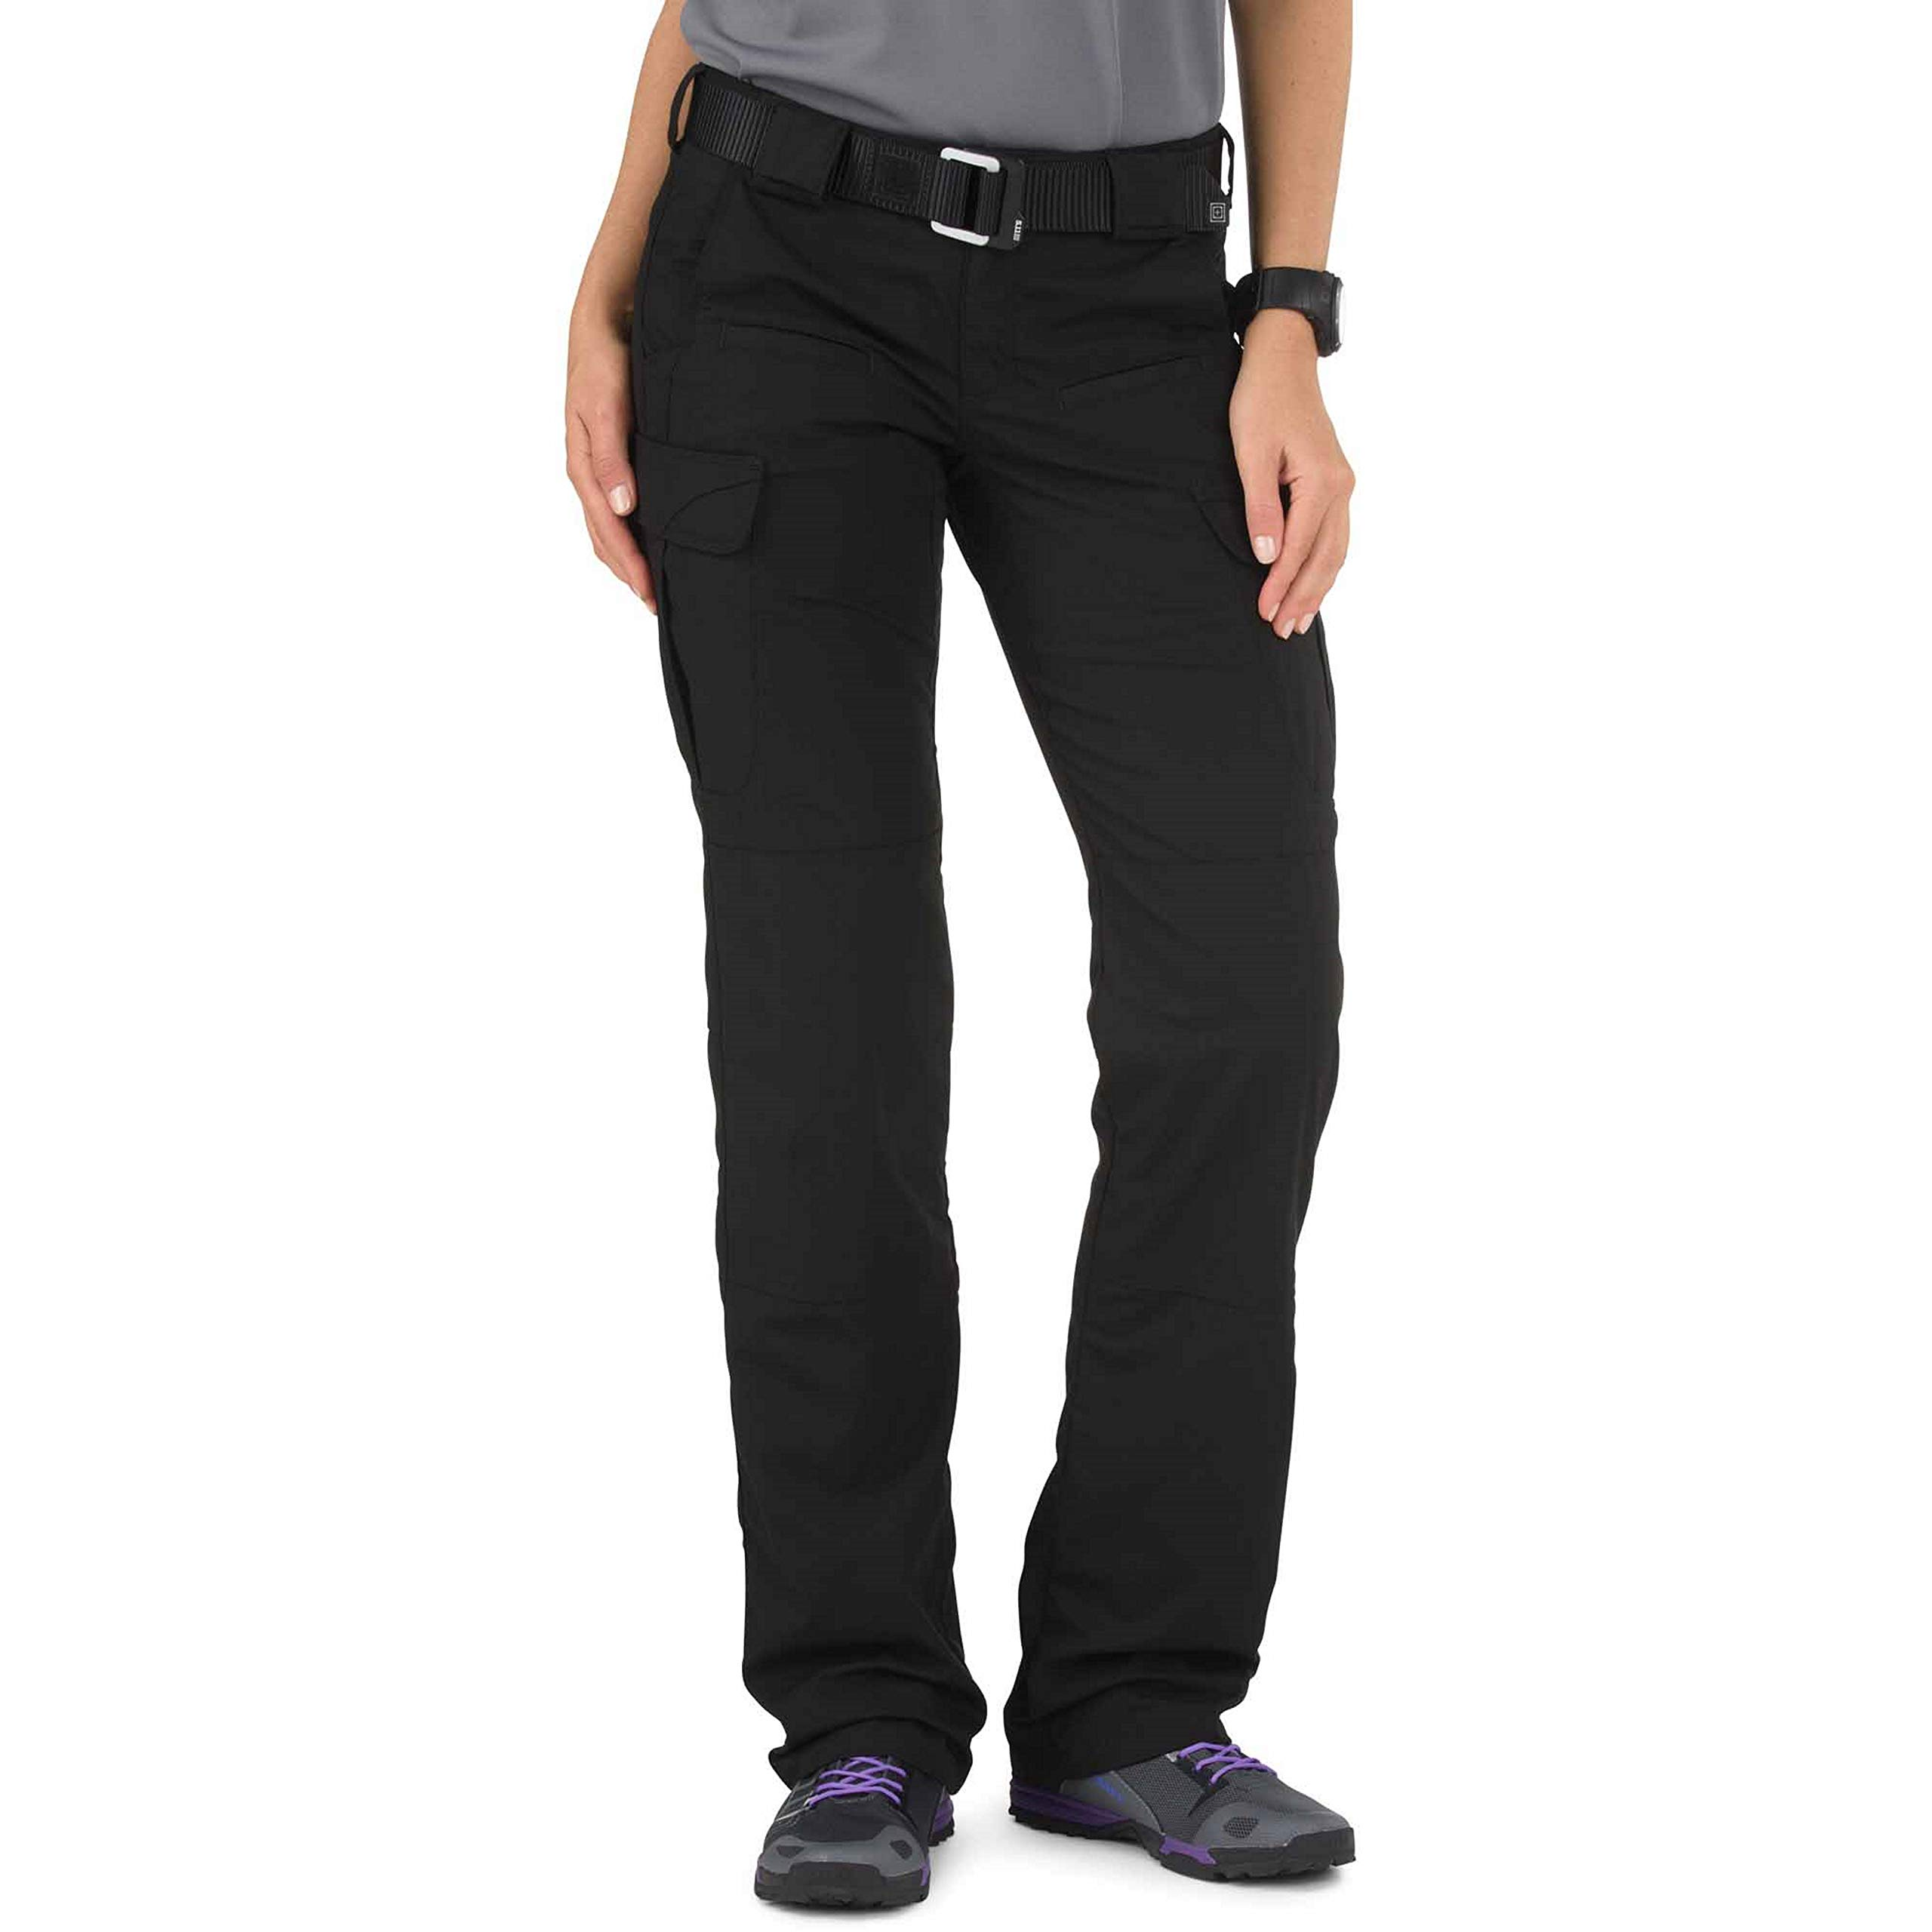 5.11 Tactical Women's Stryke Pant, Black, 12 R by 5.11